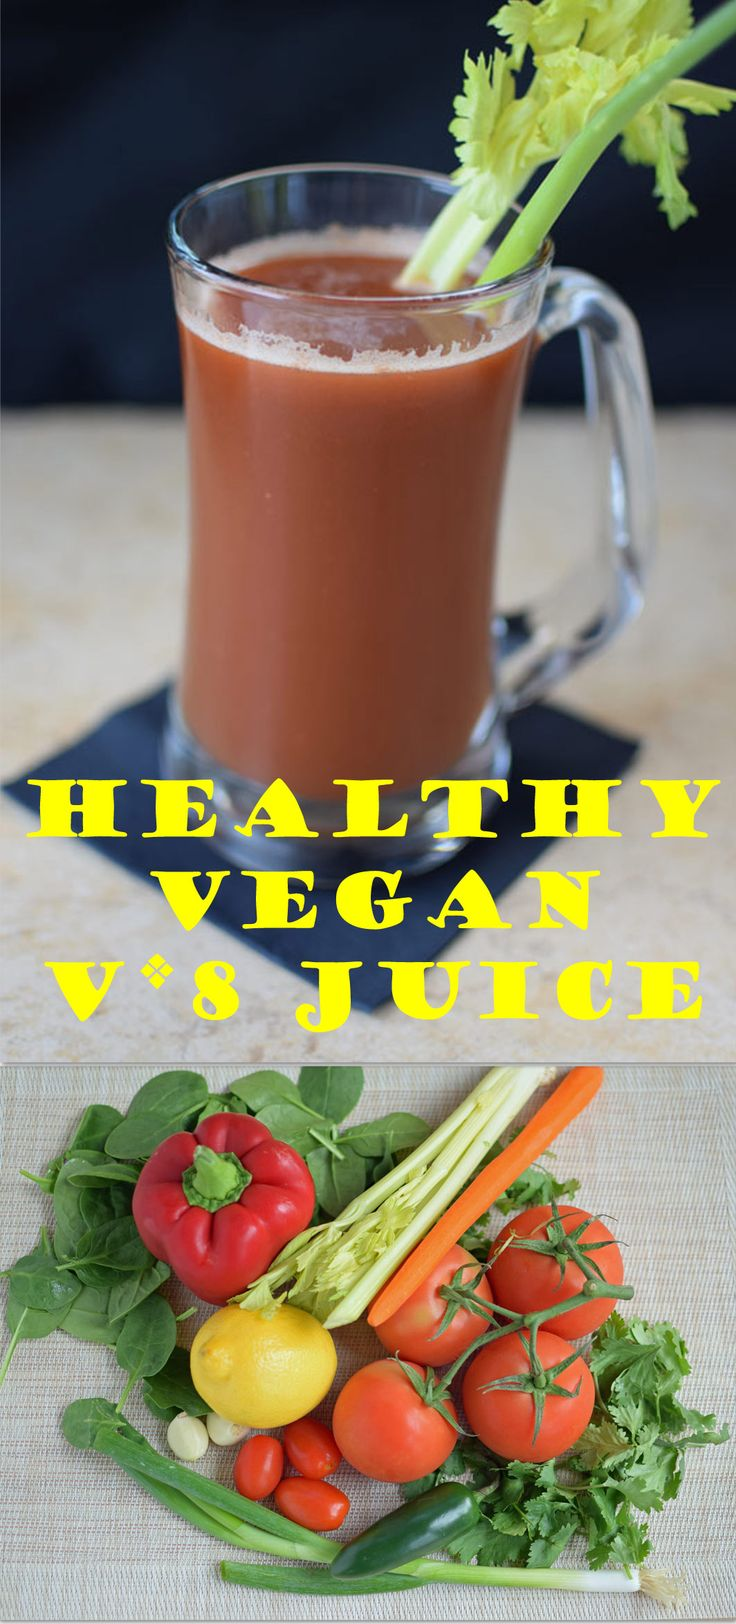 Healthy Vegan V8 Juice - Better than store bought. Much less sodium. And organic ingredients